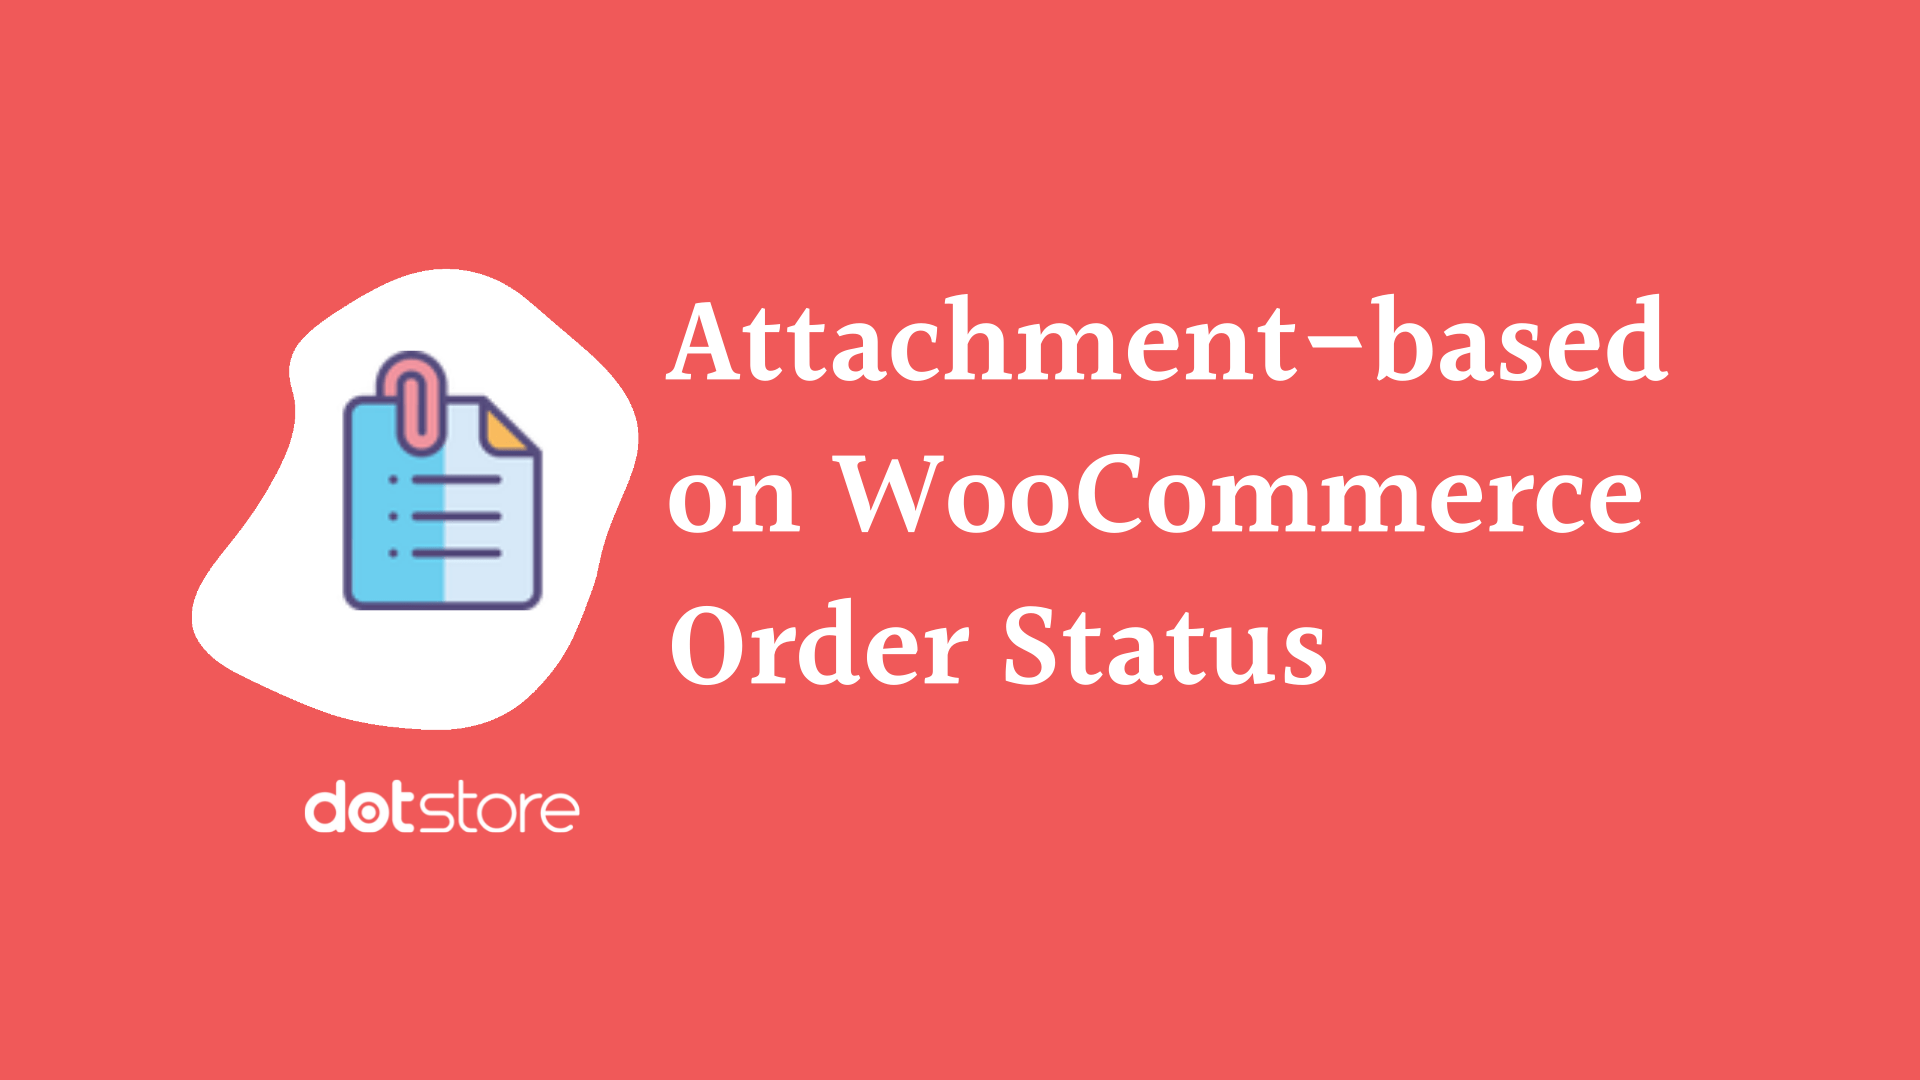 How to showcase order email attachment based on WooCommerce order status